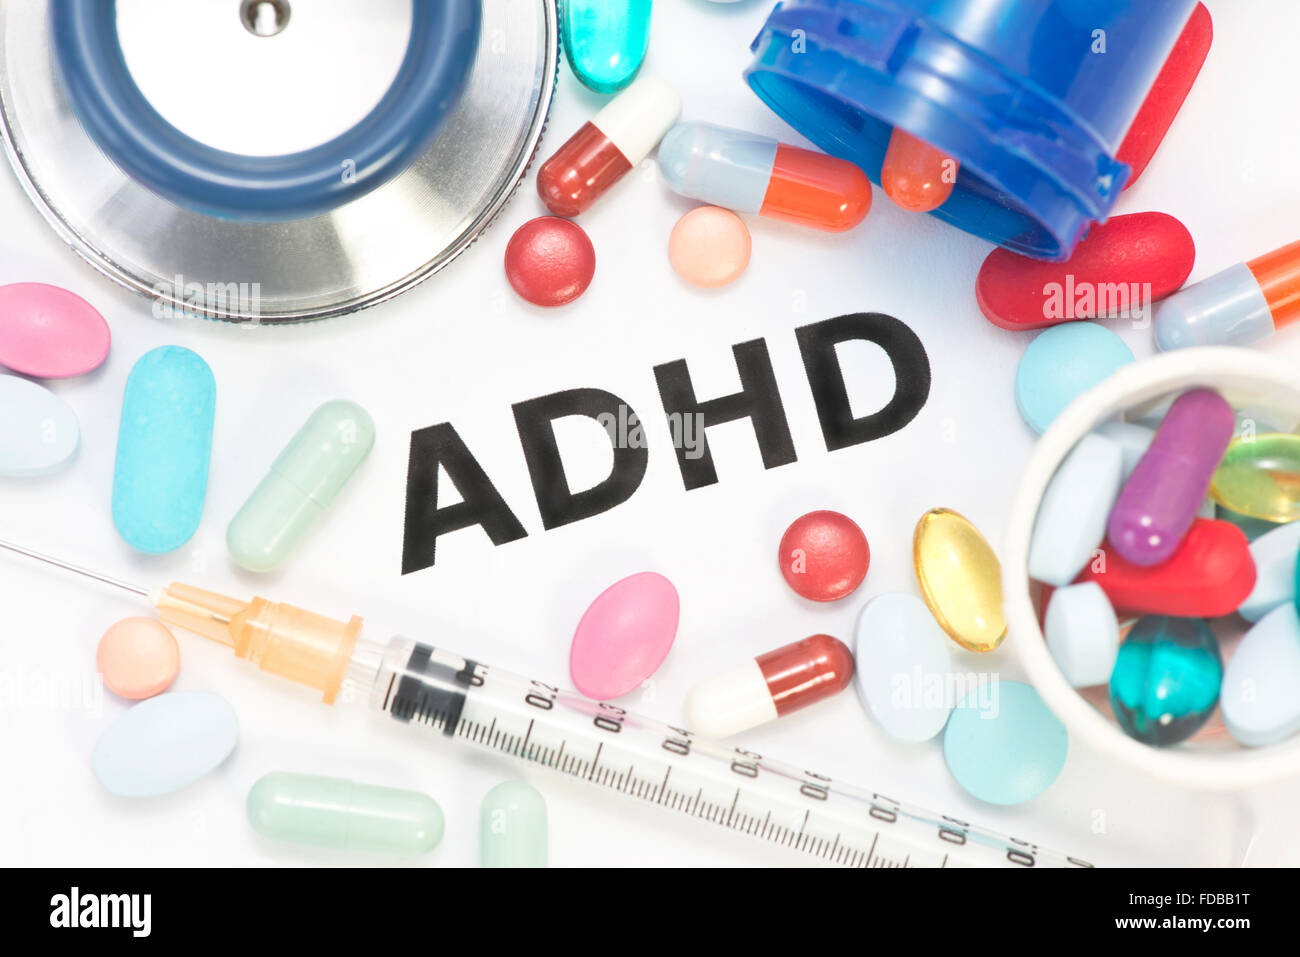 ADHD concept photo with stethoscope and medication. - Stock Image